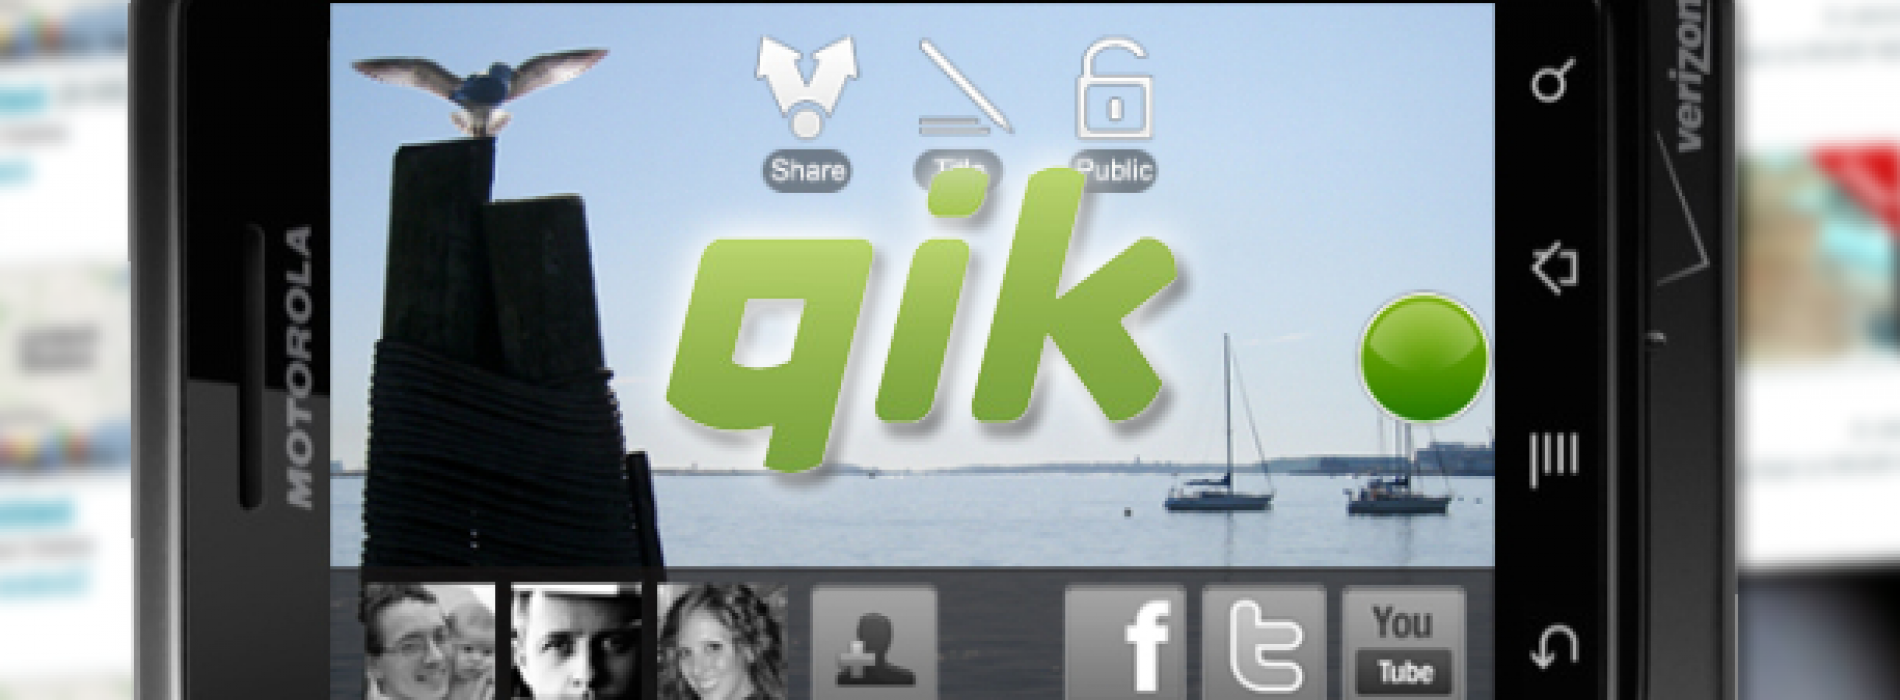 Stream Your Future Memories Real-Time with Qik